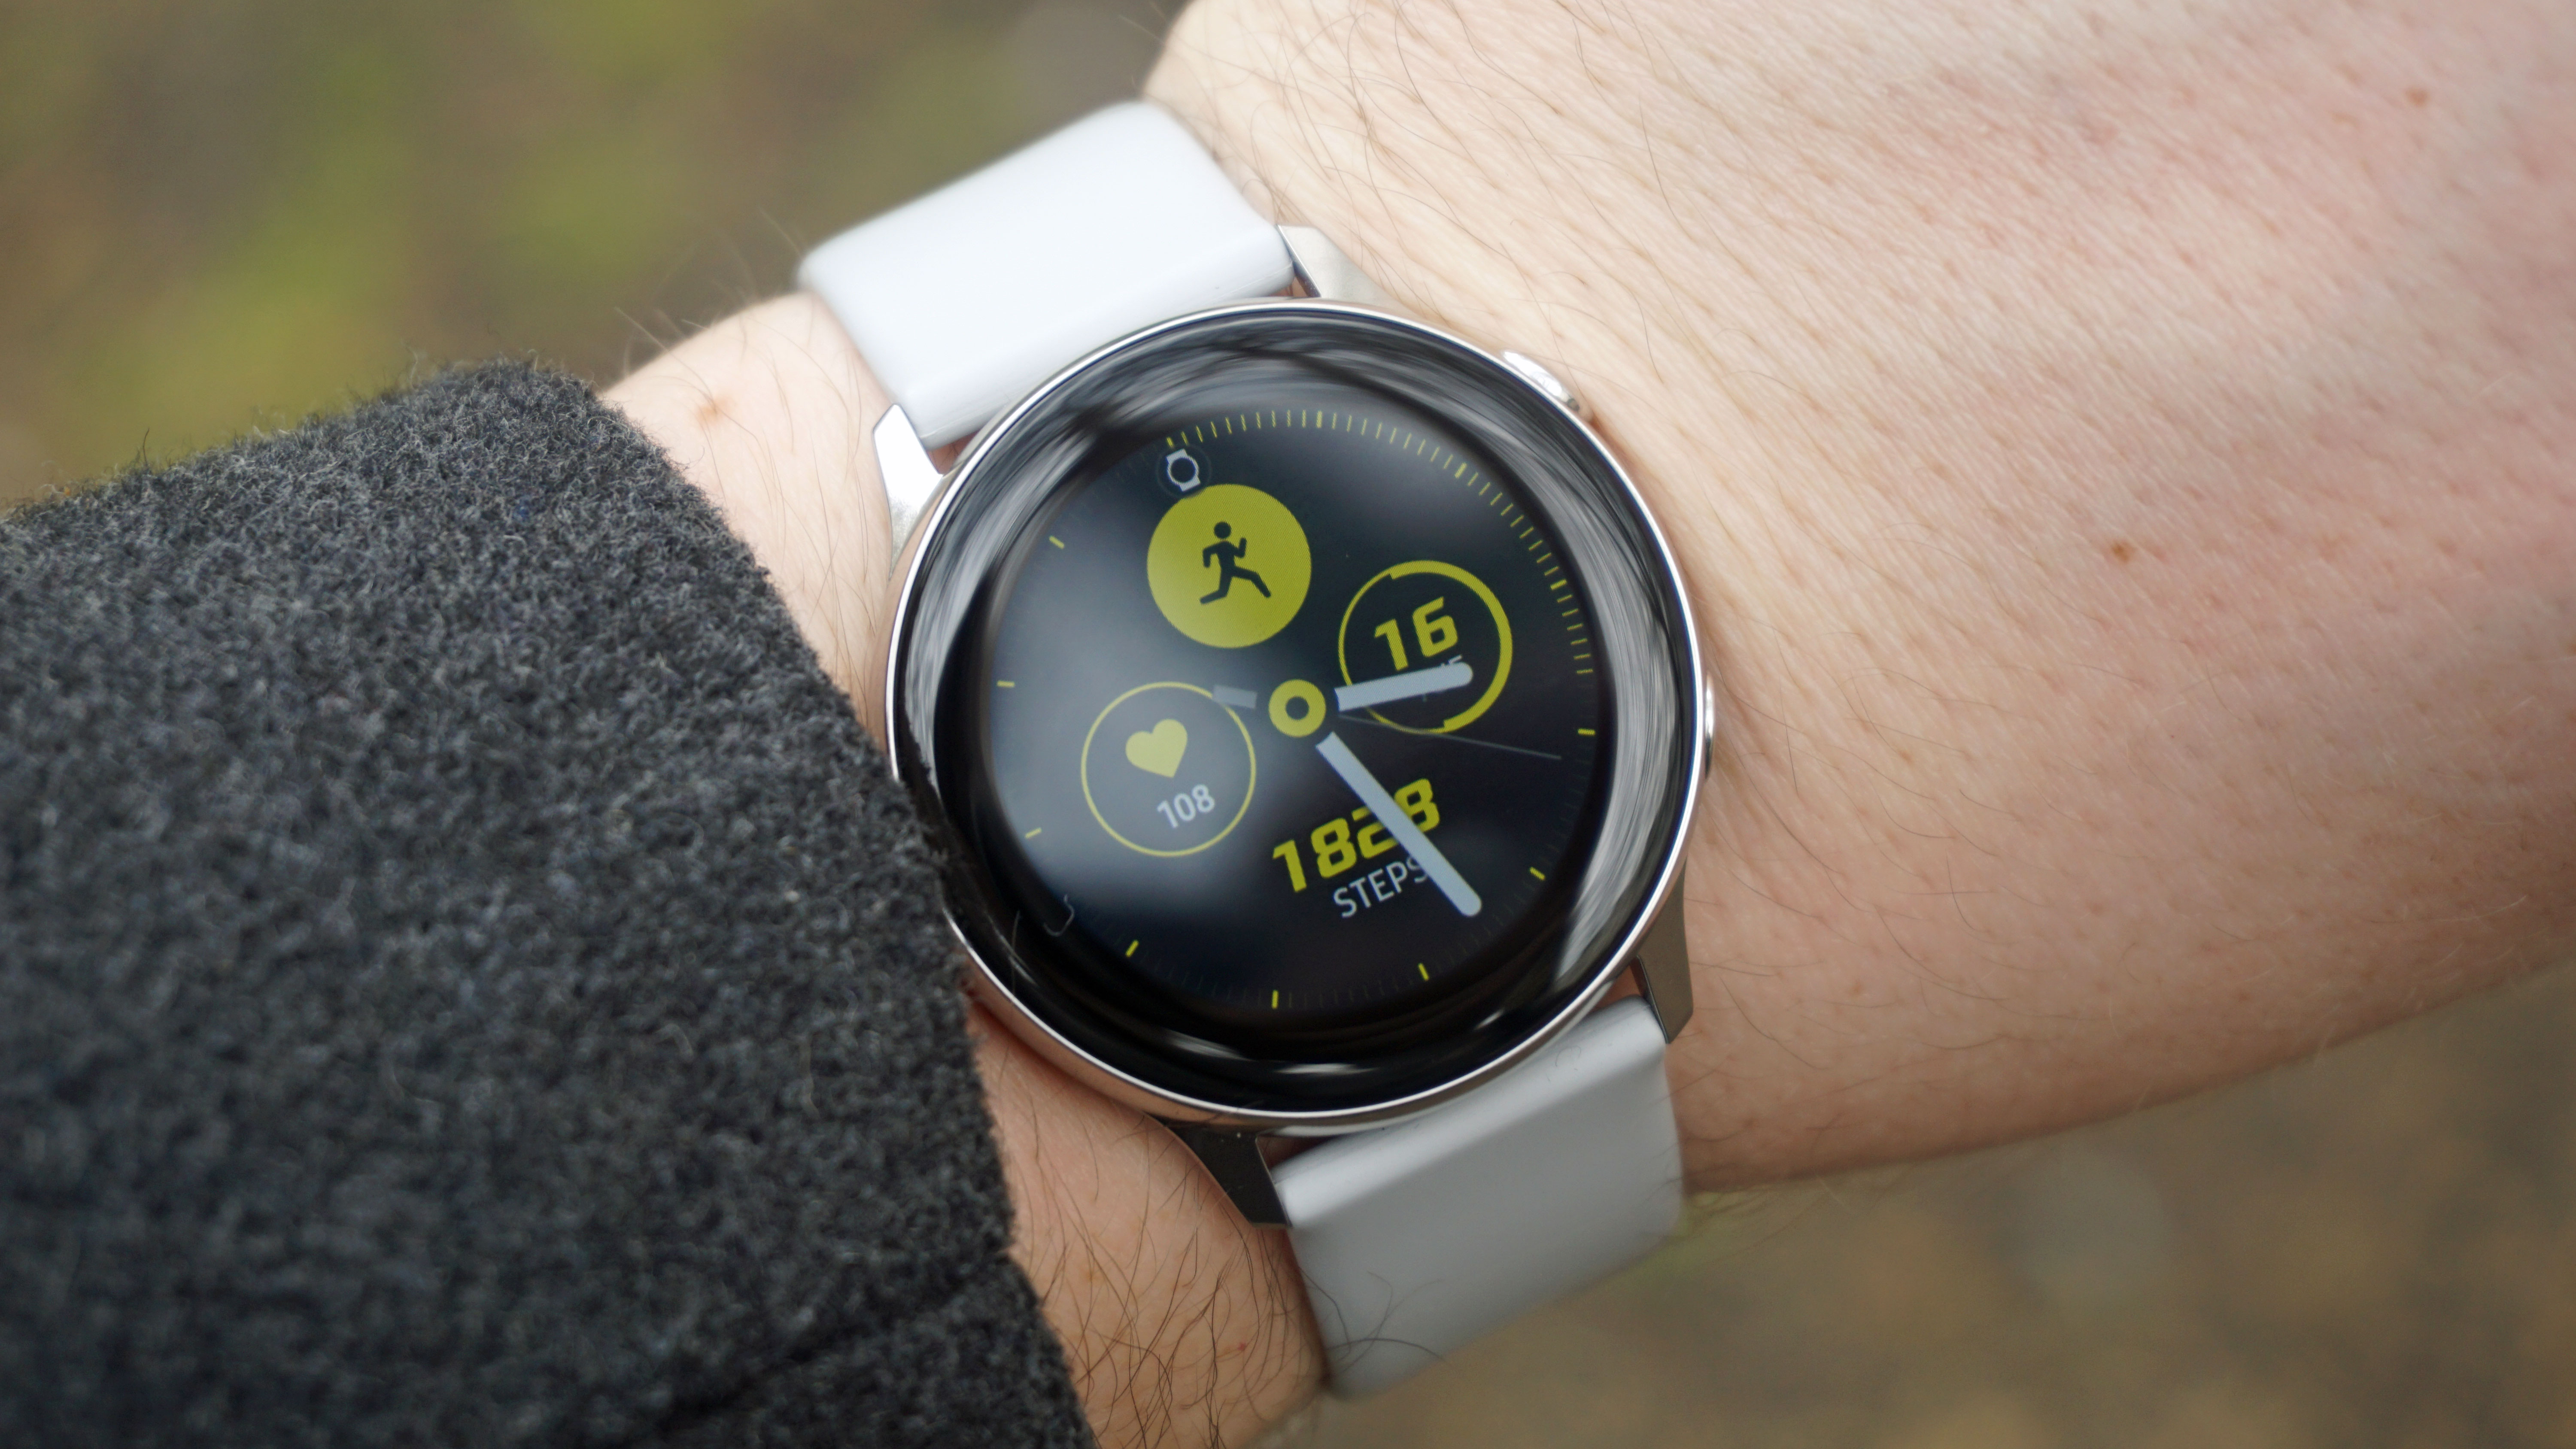 Samsung Galaxy Watch Active 2 release date, price, news and leaks